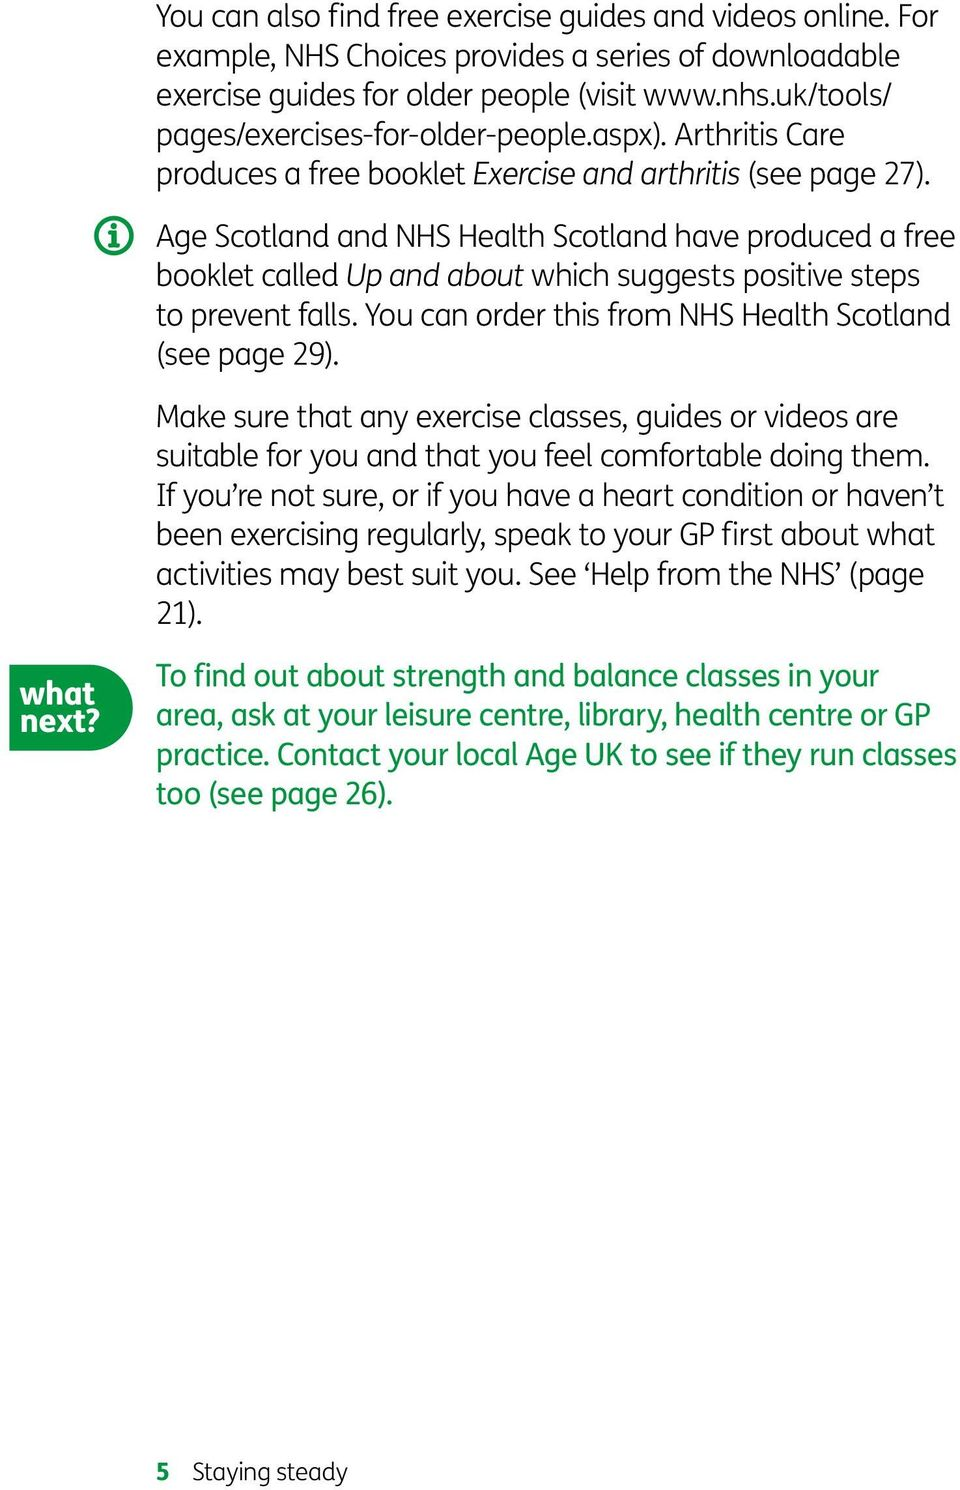 Age Scotland and NHS Health Scotland have produced a free booklet called Up and about which suggests positive steps to prevent falls. You can order this from NHS Health Scotland (see page 29).